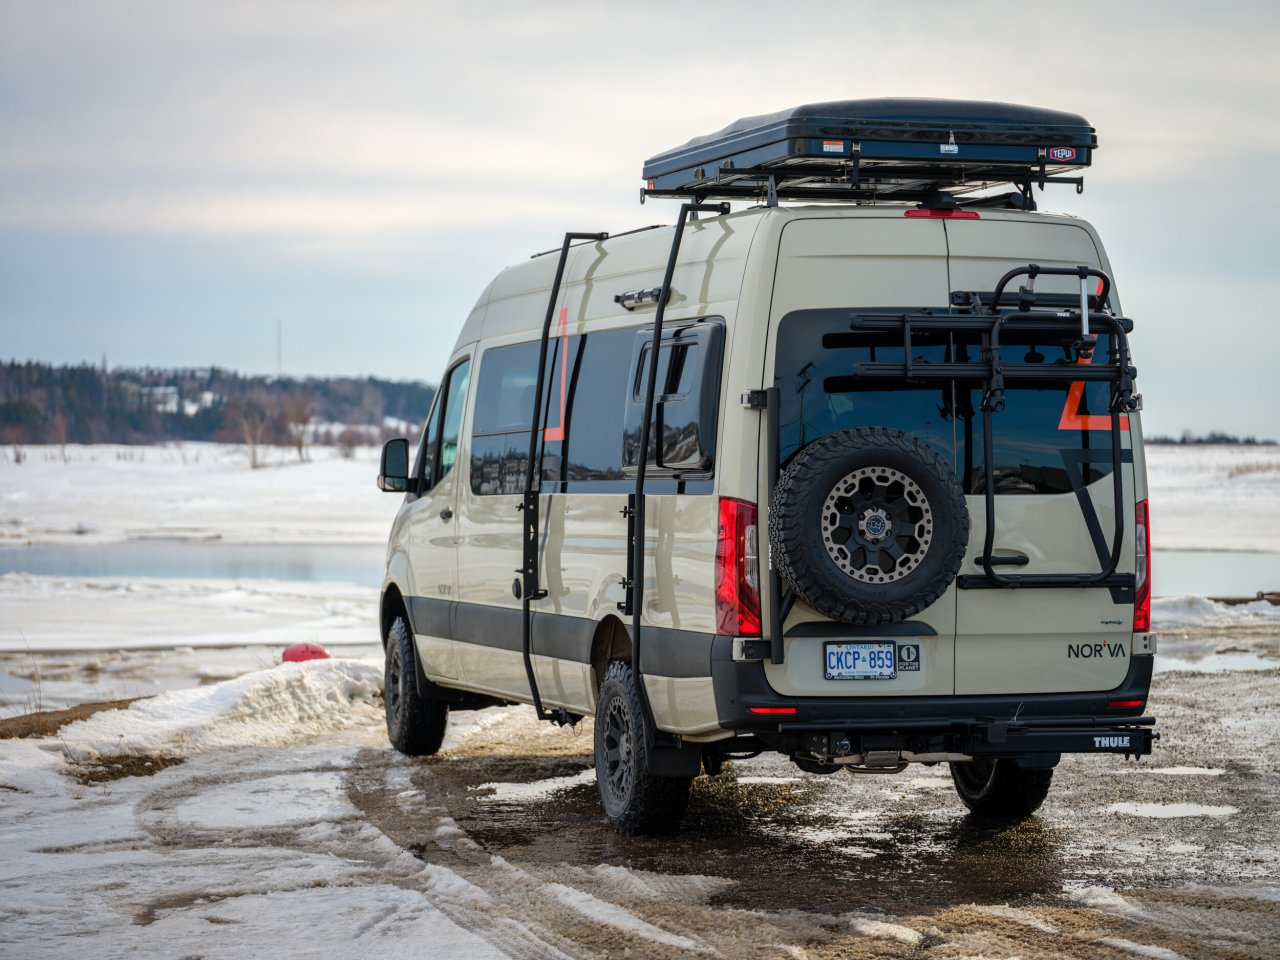 The rear of the camper van has a load door bike rack, a hitch rack and an Owl Vans spare tire carrier